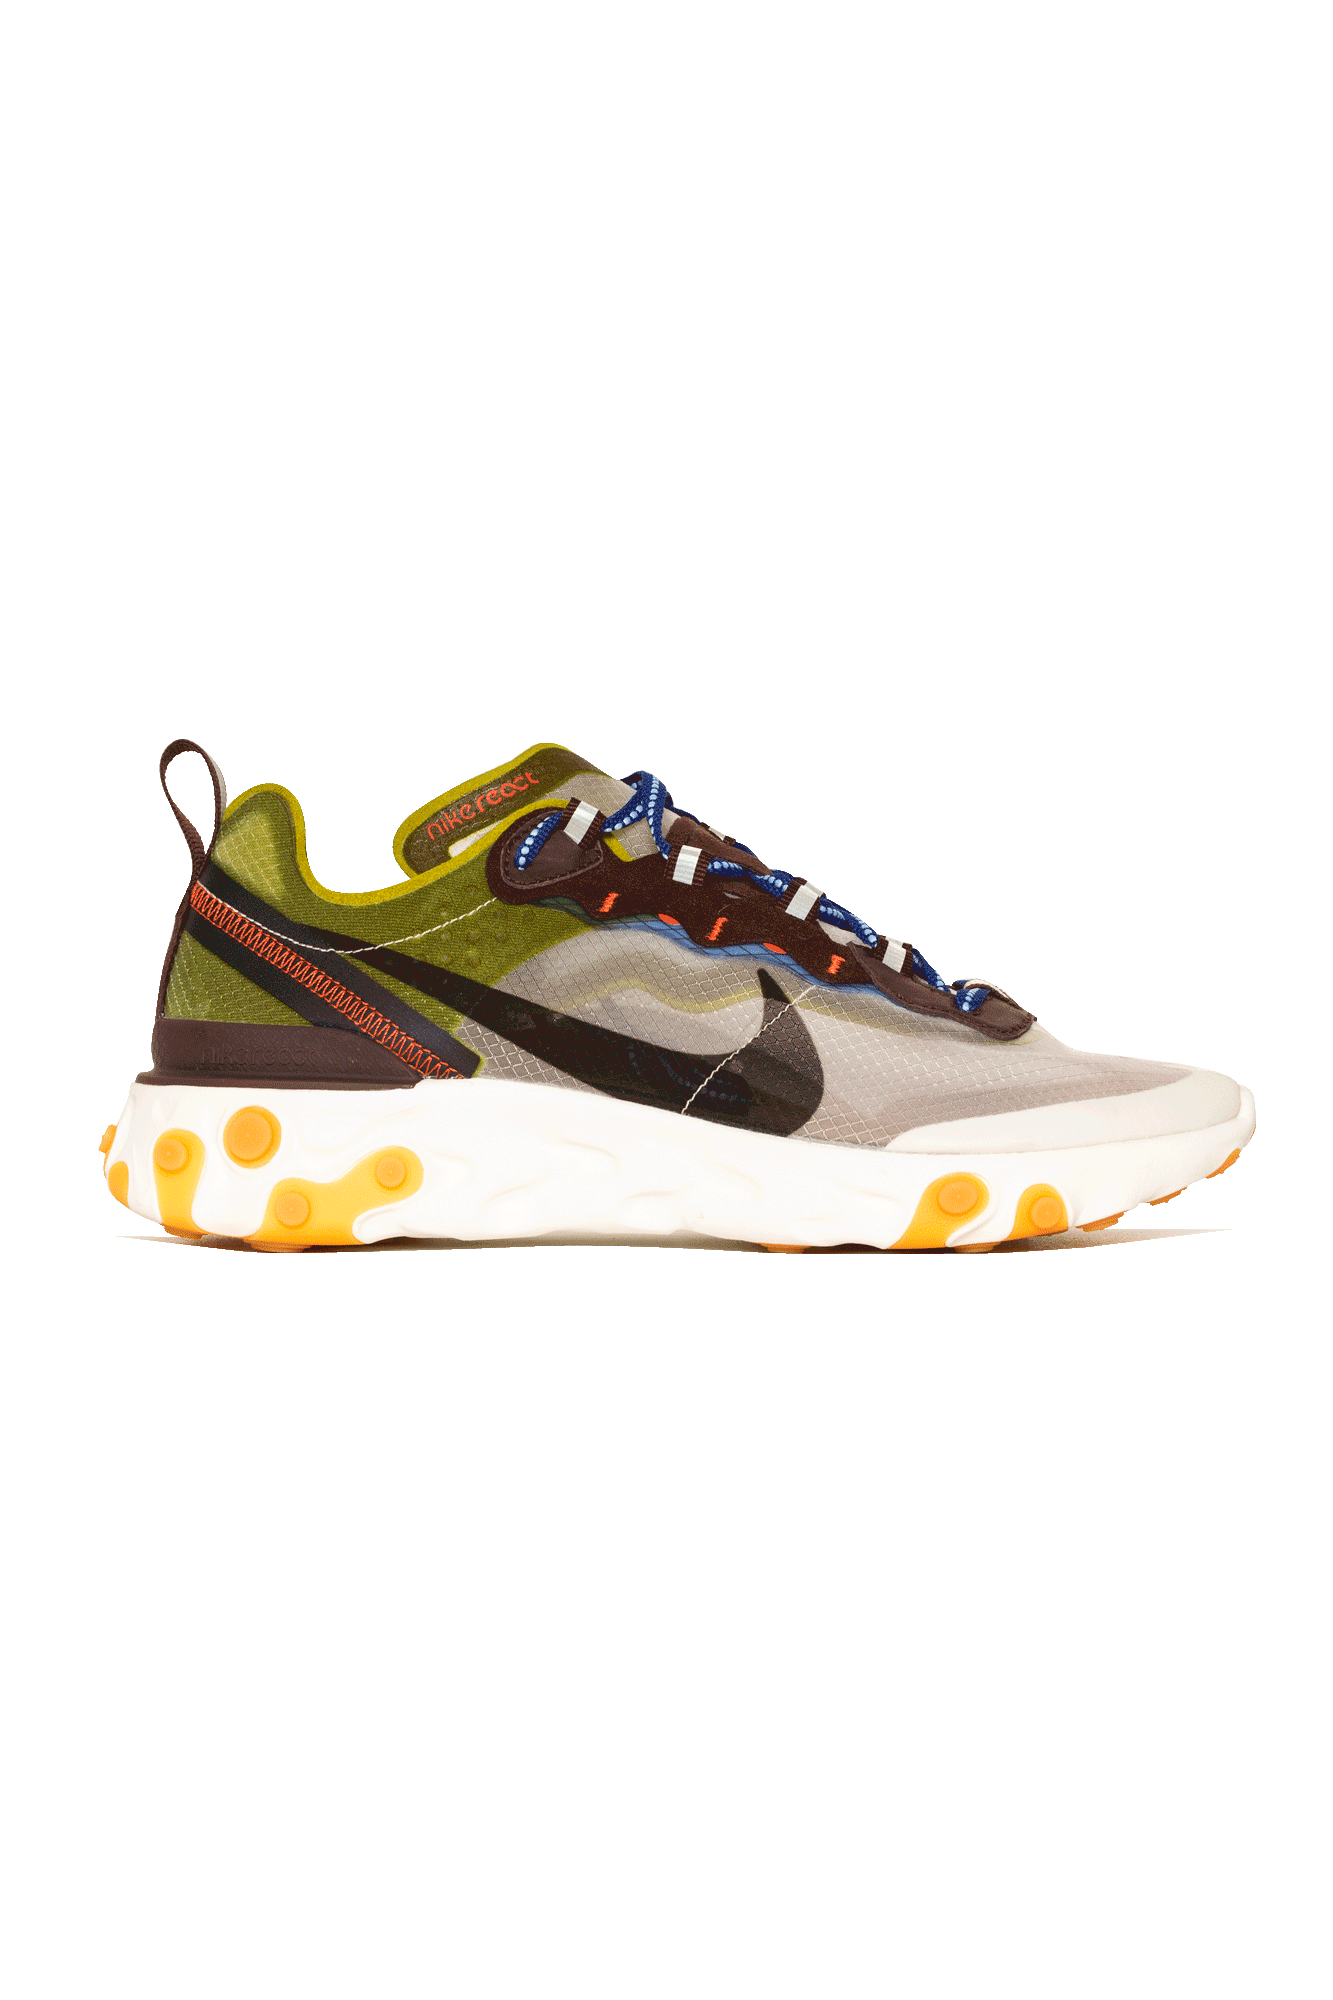 Sneakers Nike React Element 87 White - One Block Down